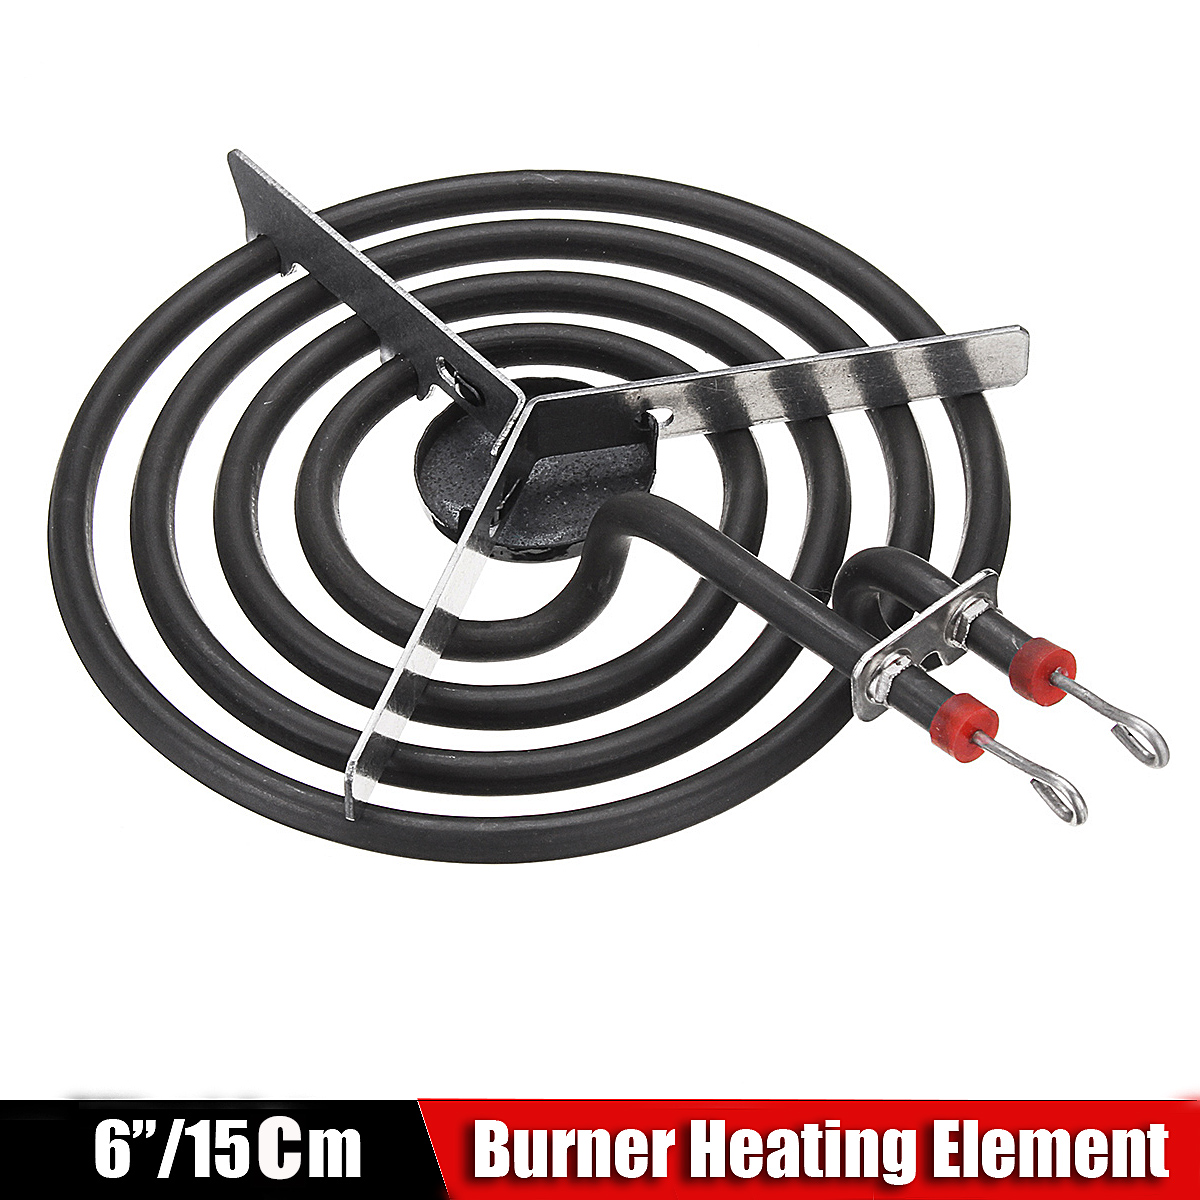 Four Rings Mosquito Electric Range Cooktop Stove 6 inch Small Surface Burner Element Coil Type Heating TubeFour Rings Mosquito Electric Range Cooktop Stove 6 inch Small Surface Burner Element Coil Type Heating Tube